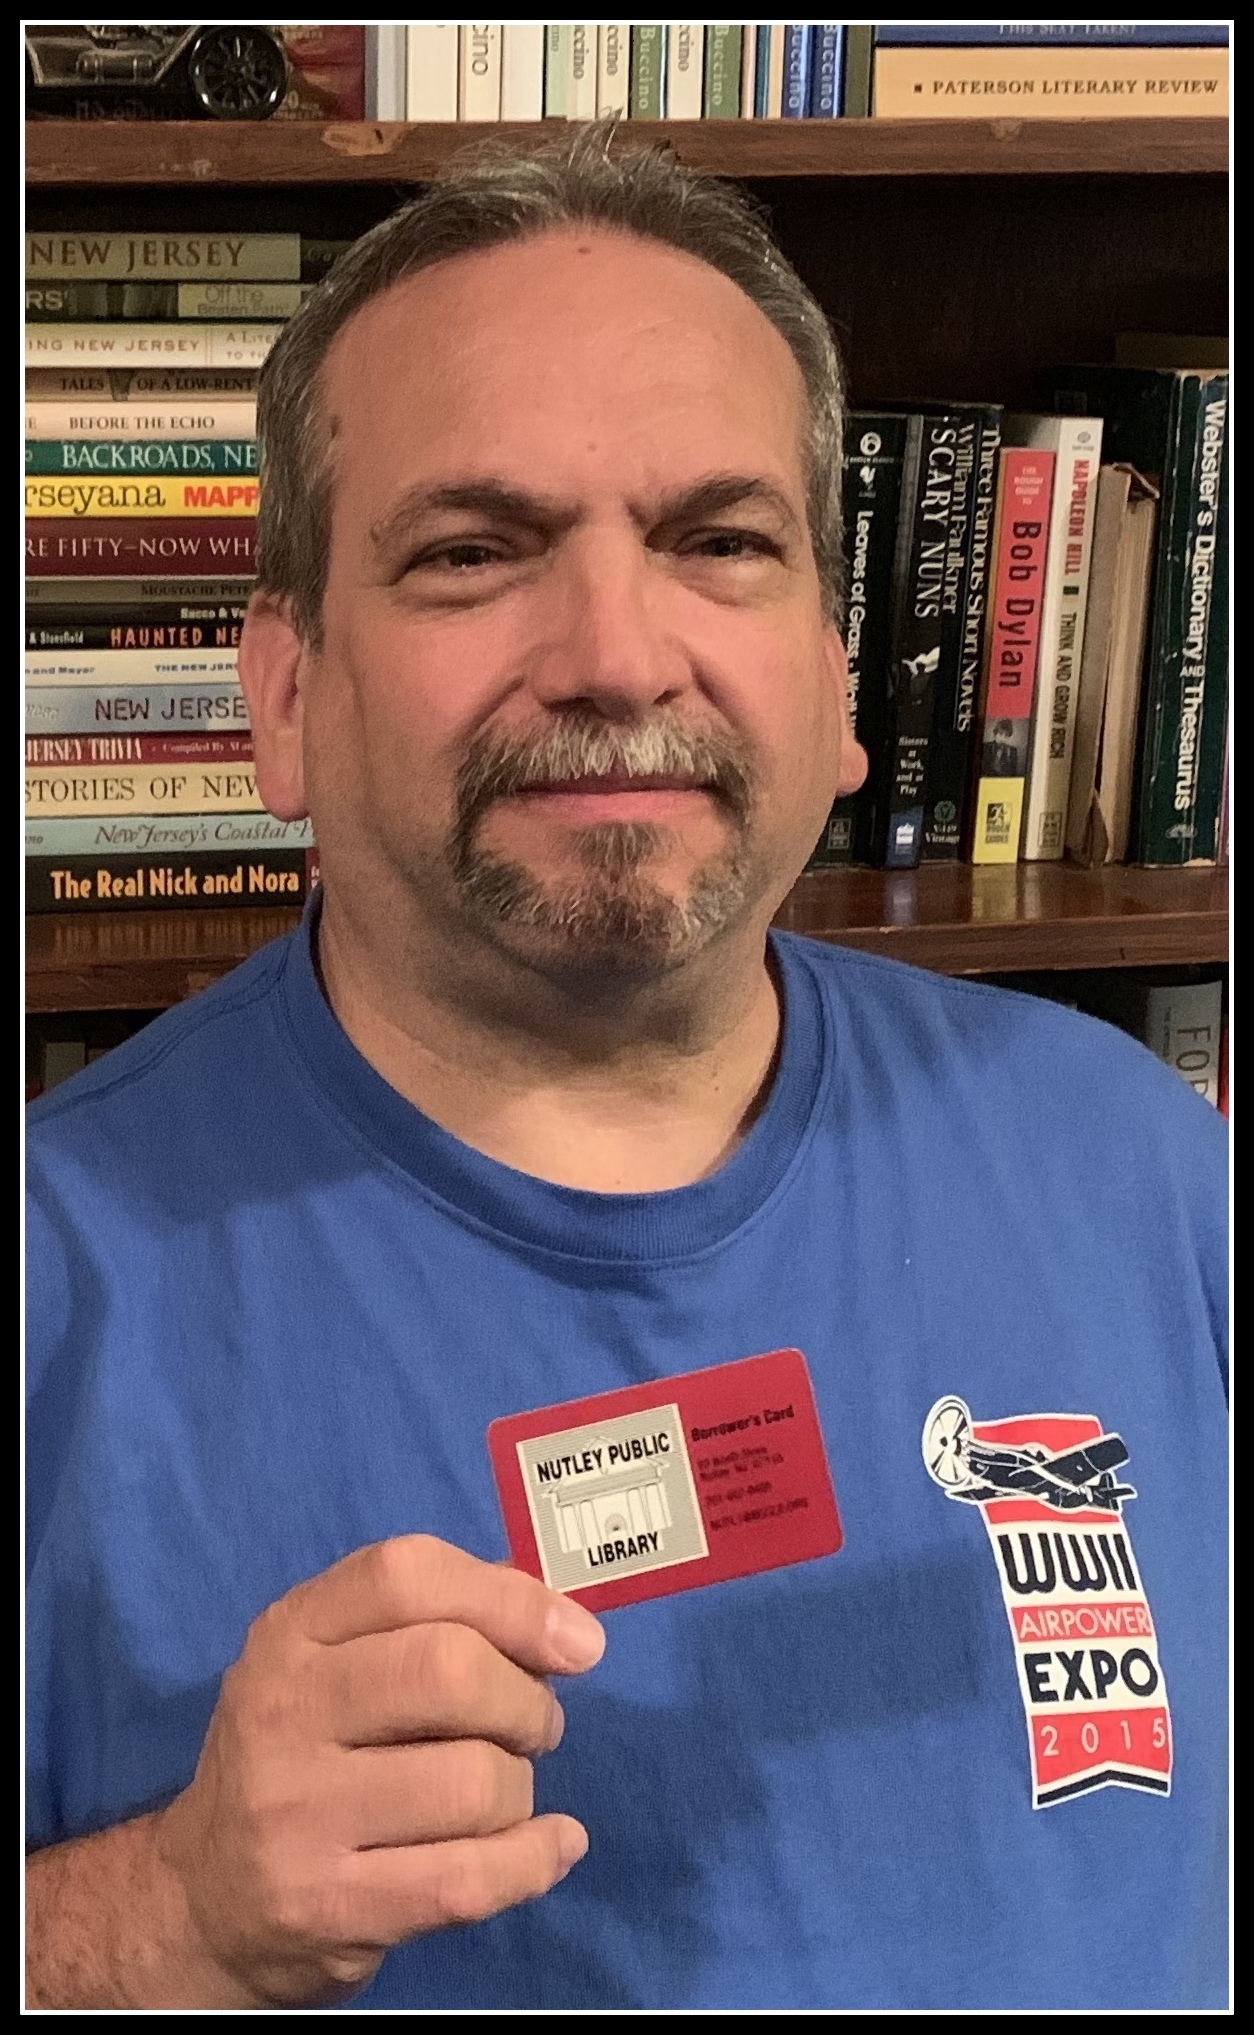 Author Anthony Buccino with Nutley Public Library library card